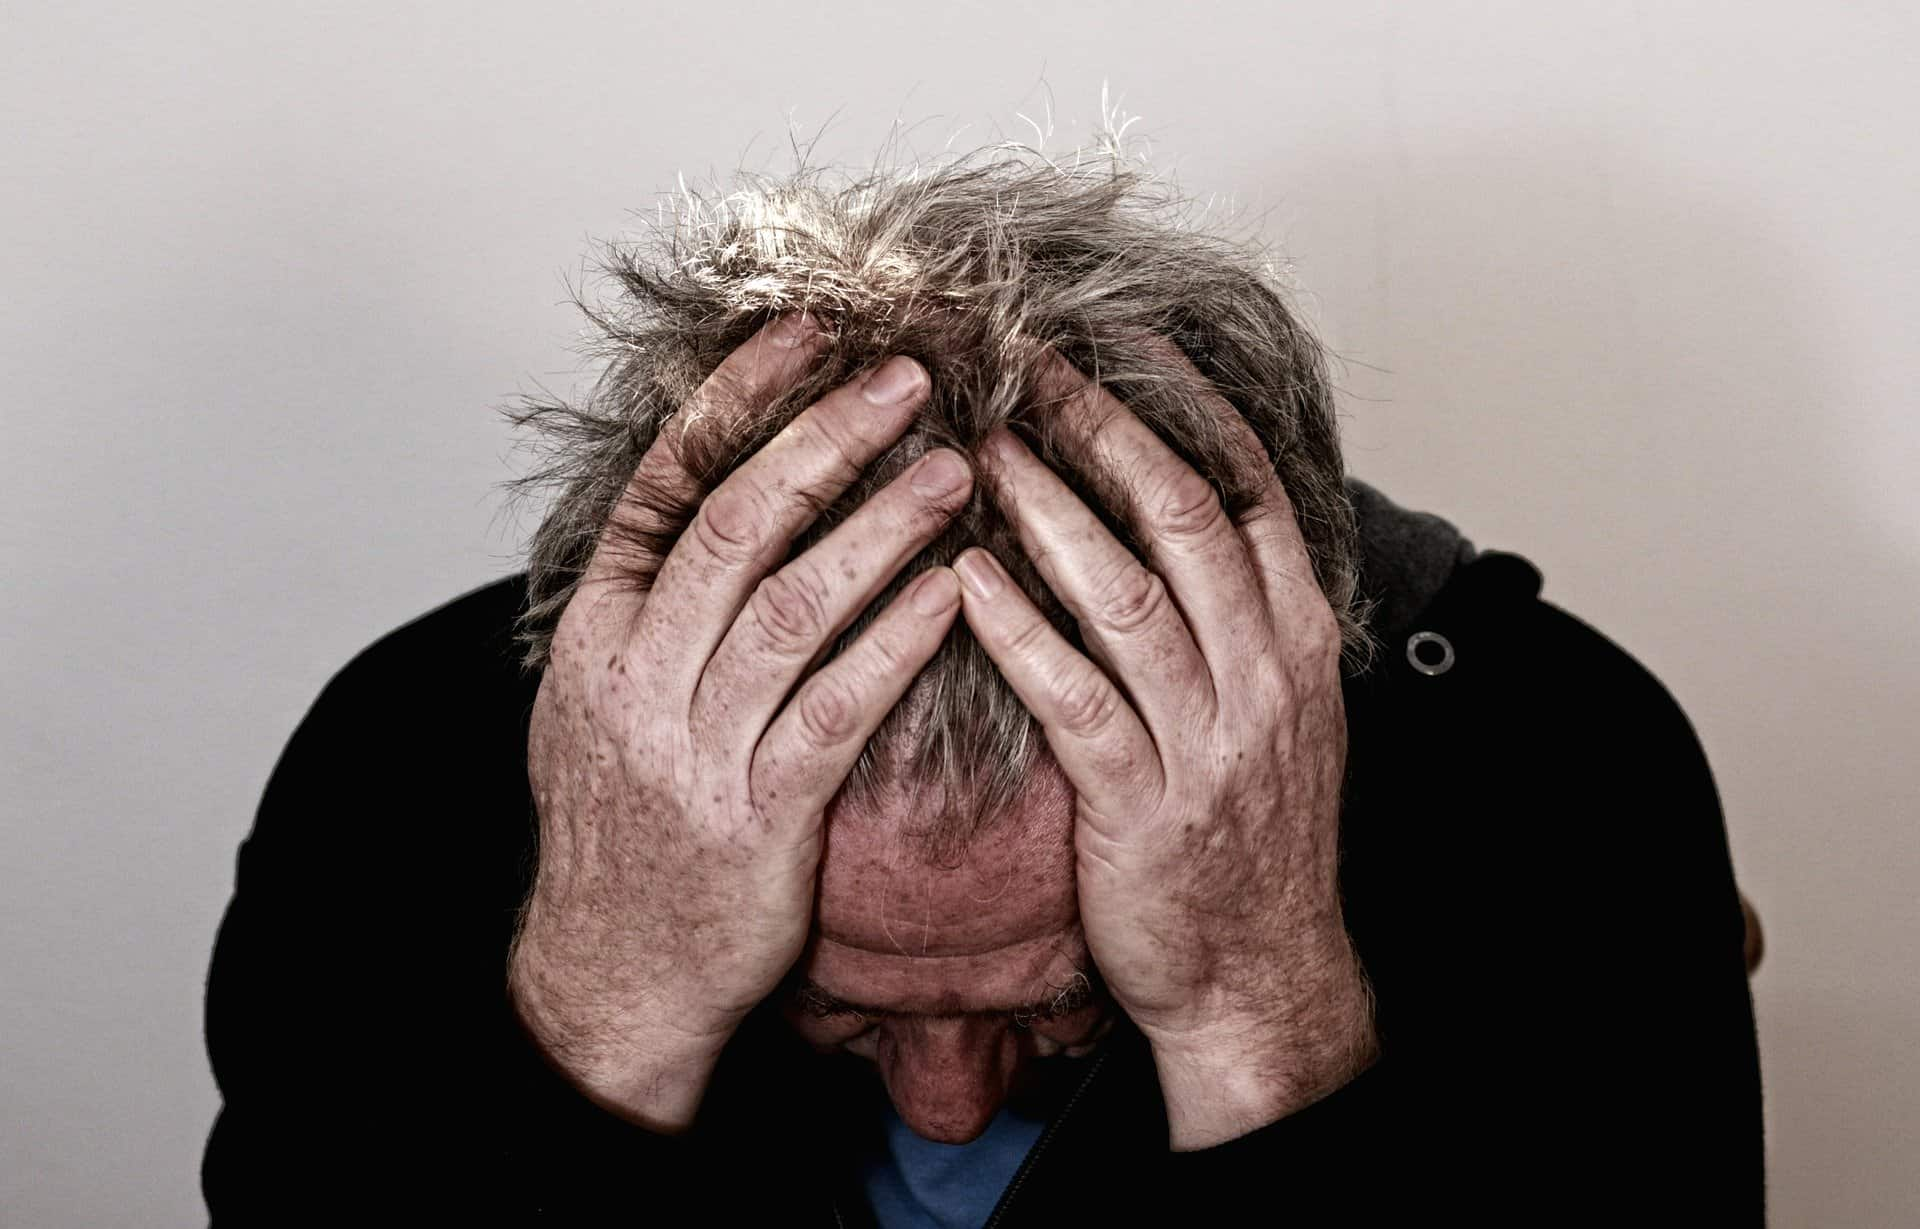 Post-Traumatic-Stress-Disorder-Personal-Injury-Car-Accident-Hurt-Life-Attorney-Lawyer-Life-Hard